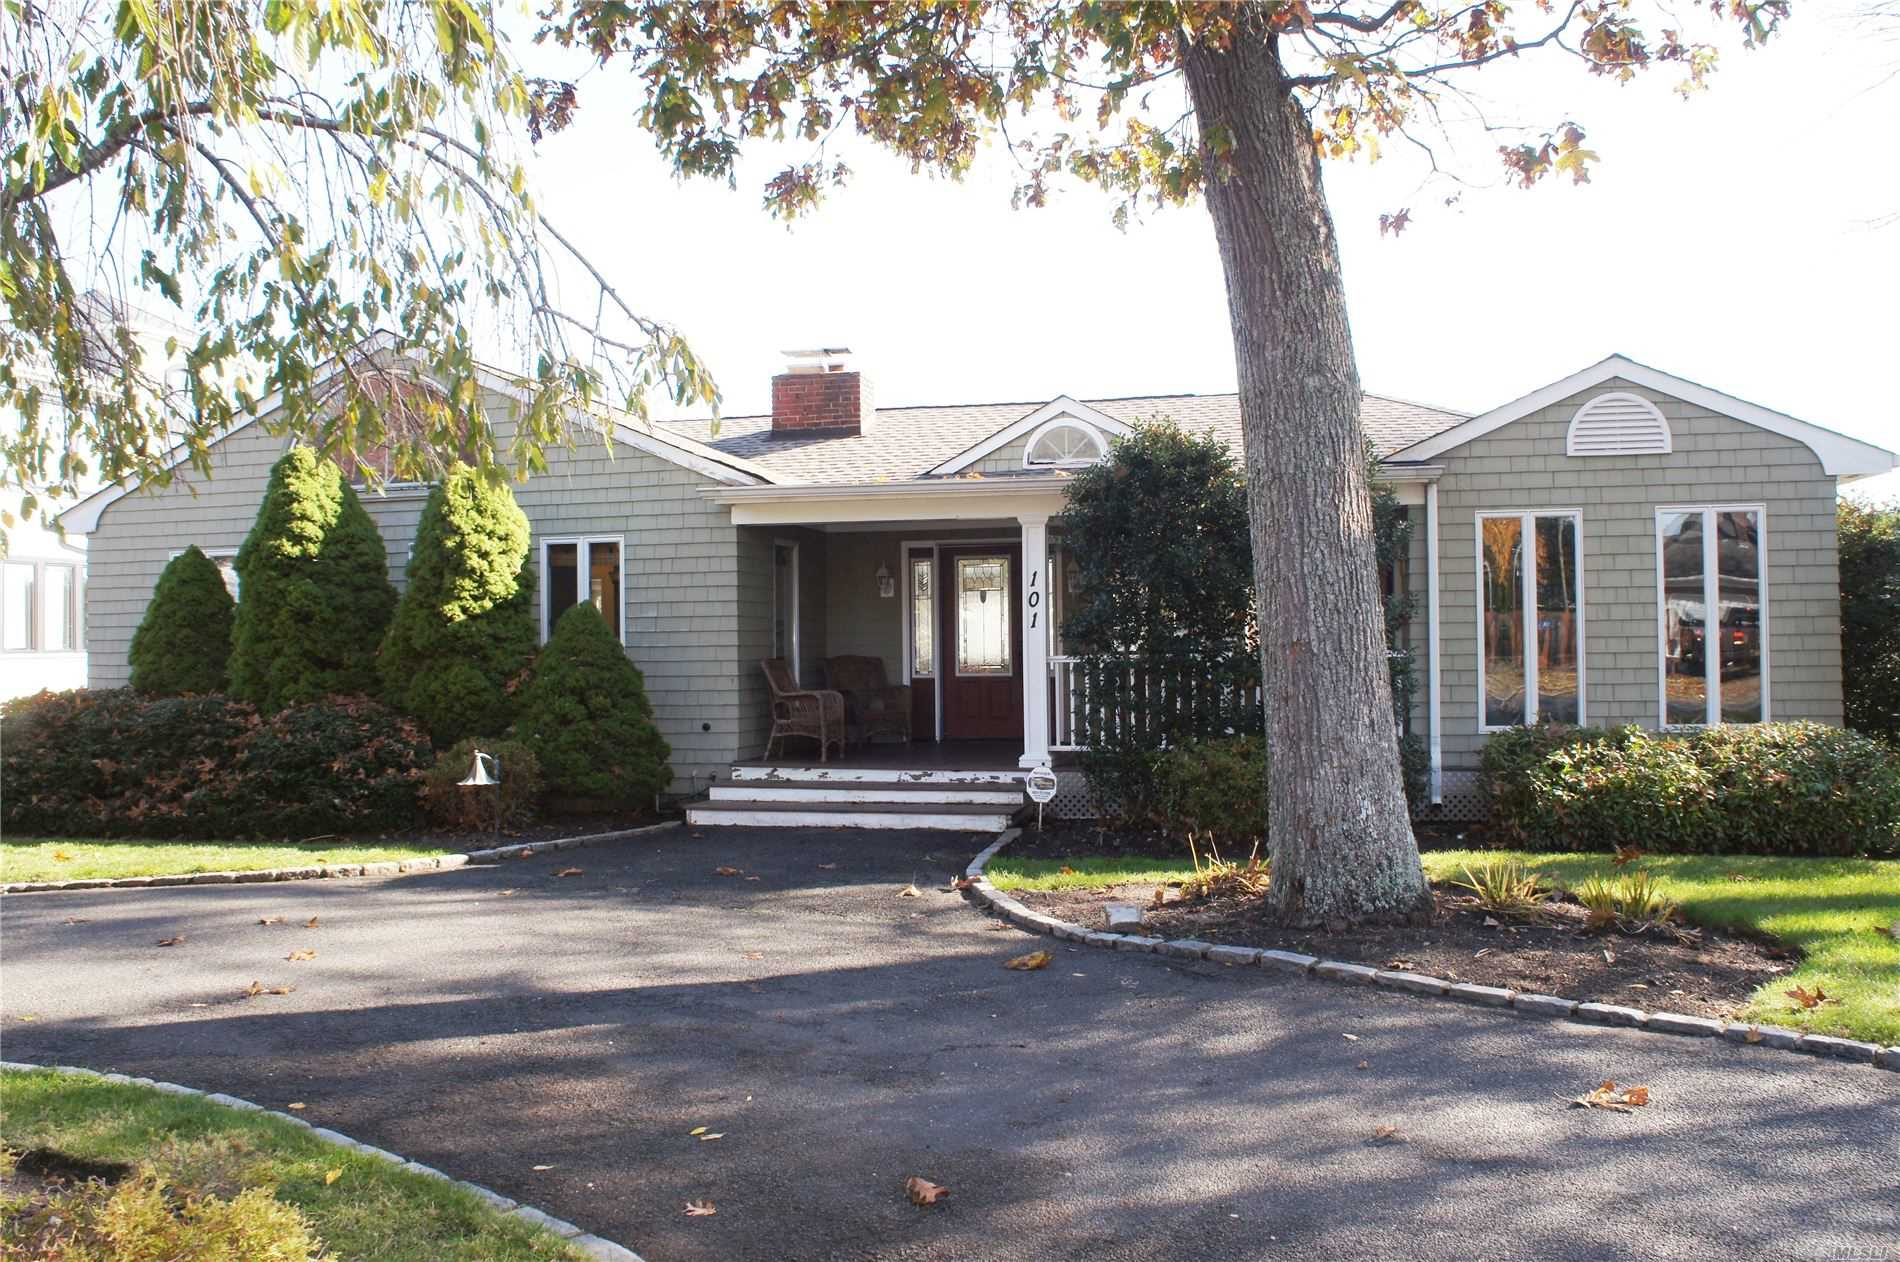 Incredible waterfront ranch in the Holiday Beach section of Center Moriches. 75 ft of bulkhead with dockspace for 4 boats. 40' x 6' floating dock w/water and 30 & 50 amp service. 2br, bth, mb w/bth, kit w/fp, dr w/fp, lr and pfin bas. exquisite views from lr & mst br. Step out onto the deck overlooking the water to an amazing semi ig pool. Perfect for entertaining! A must see. Call today.